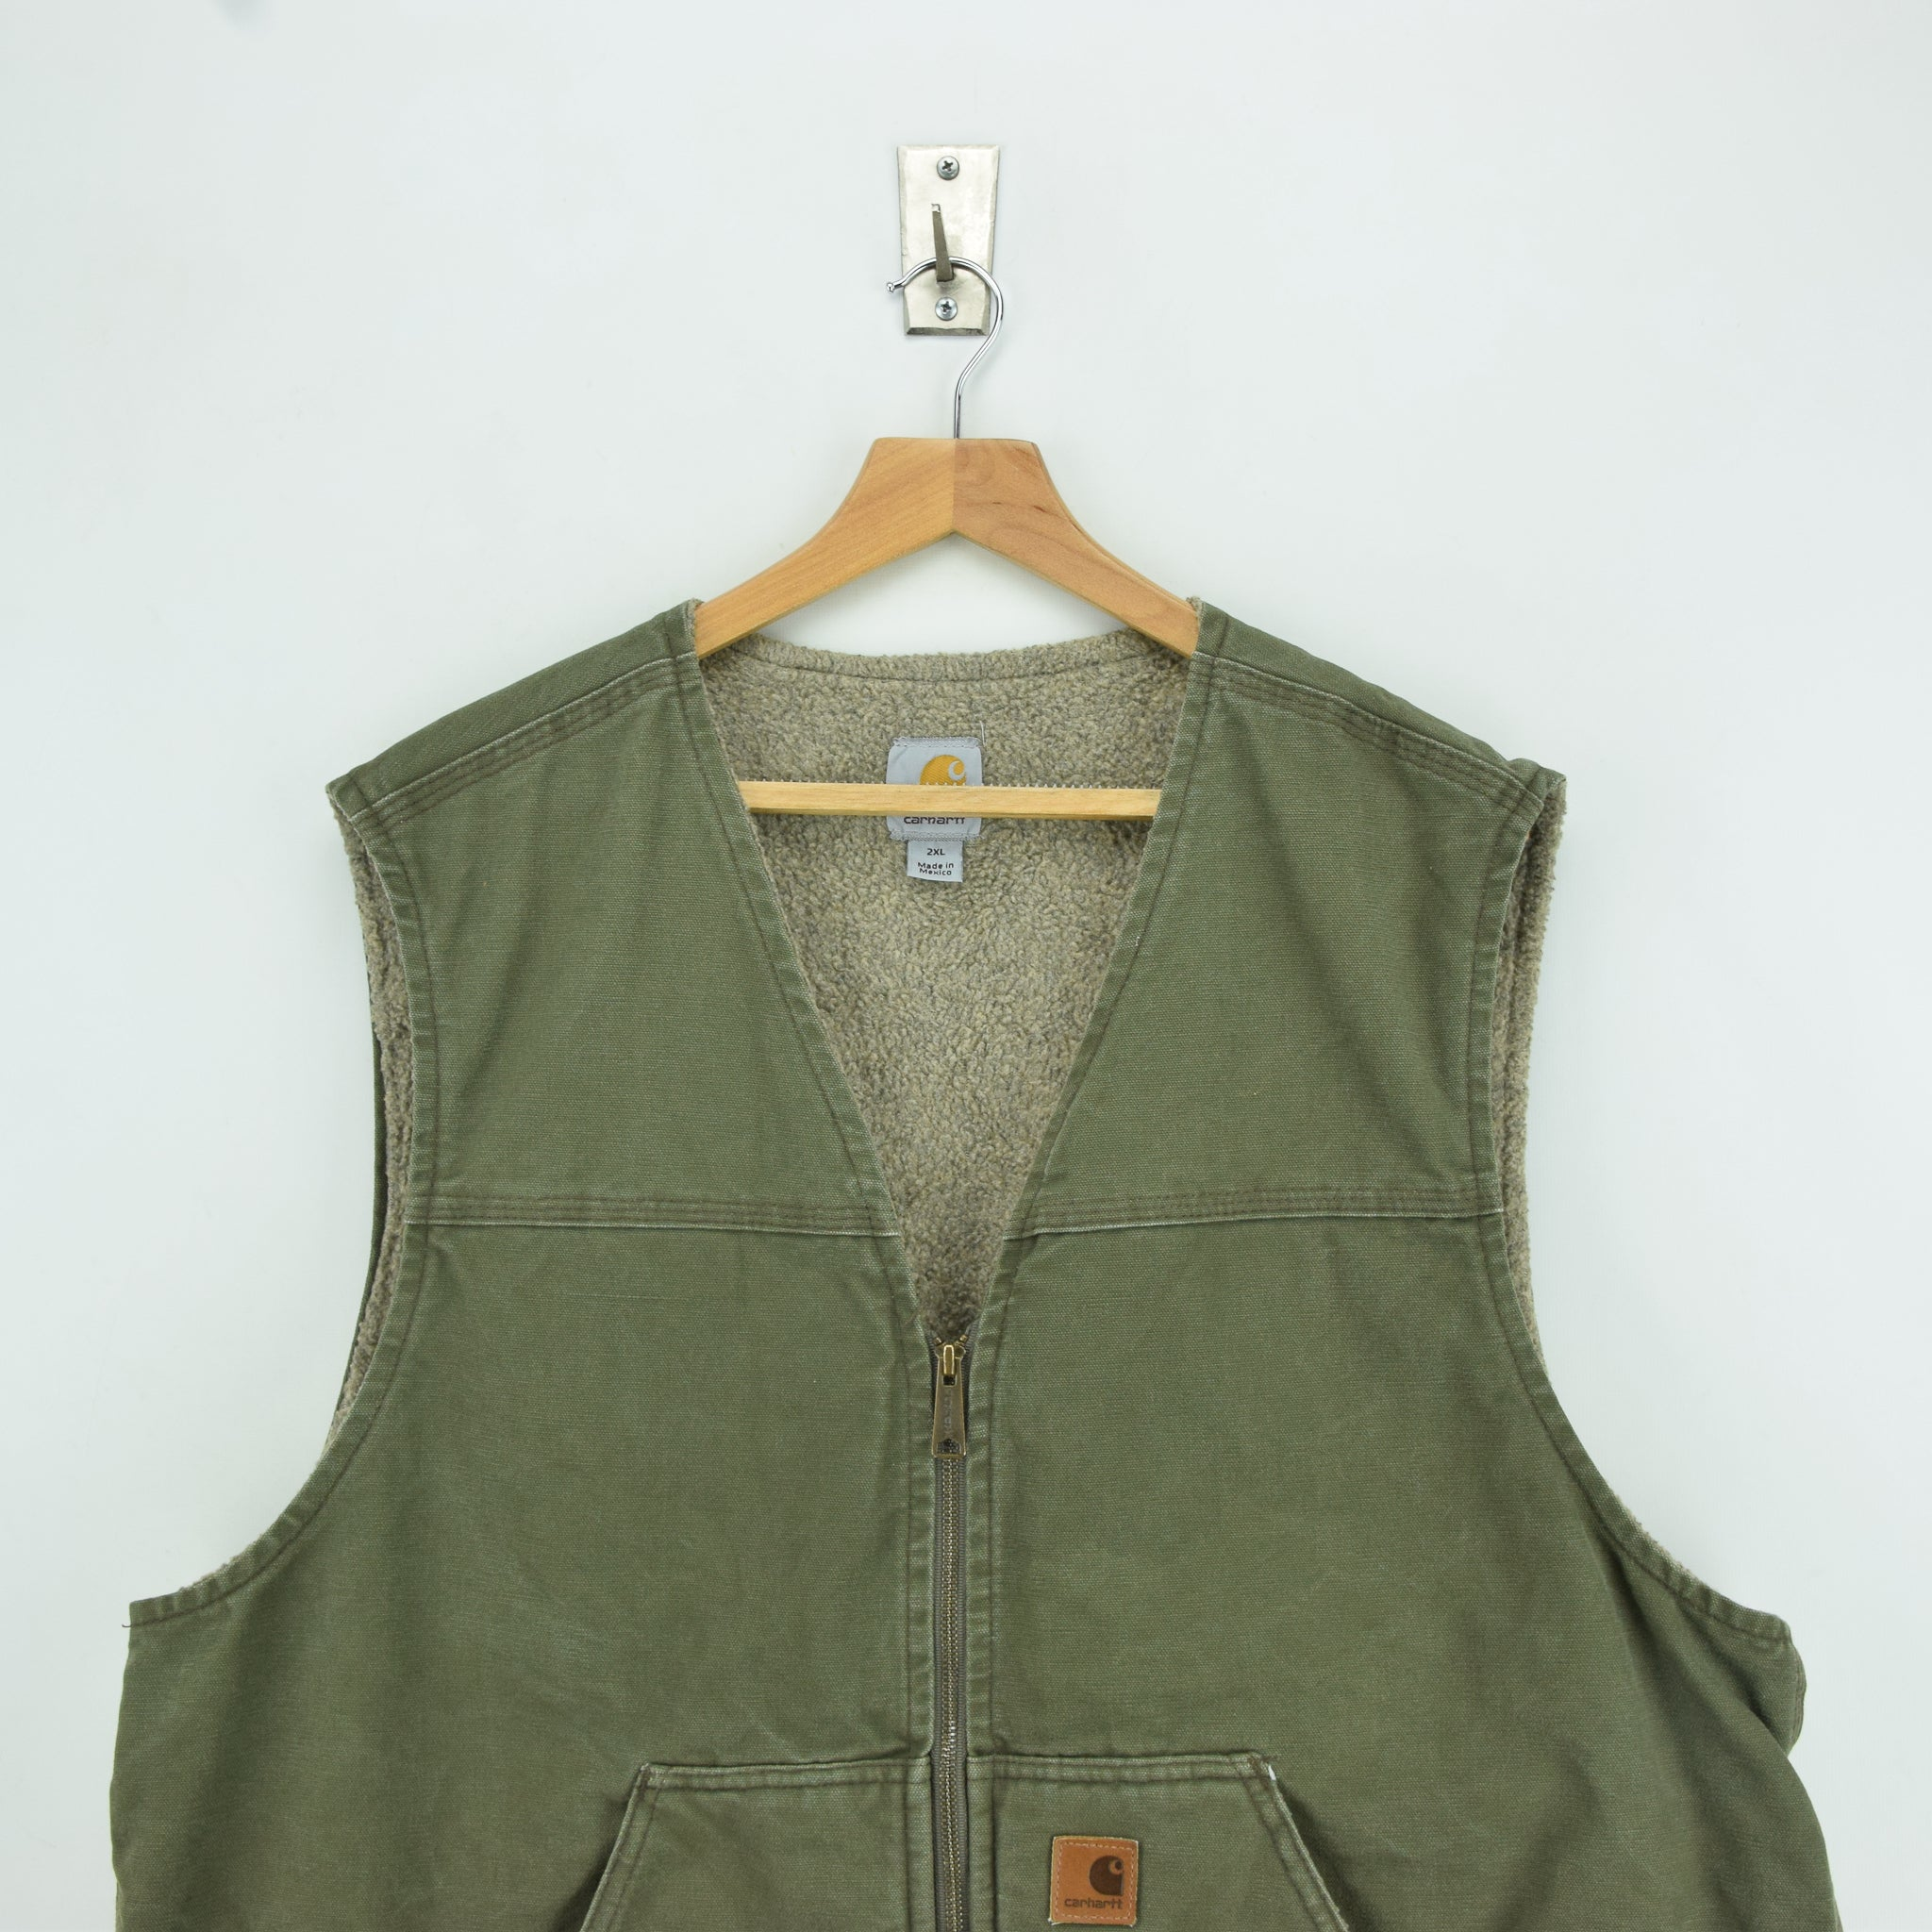 Vintage Carhartt Green Gilet Duck Canvas Cotton Waistcoat Vest Sherpa Lined XXL chest